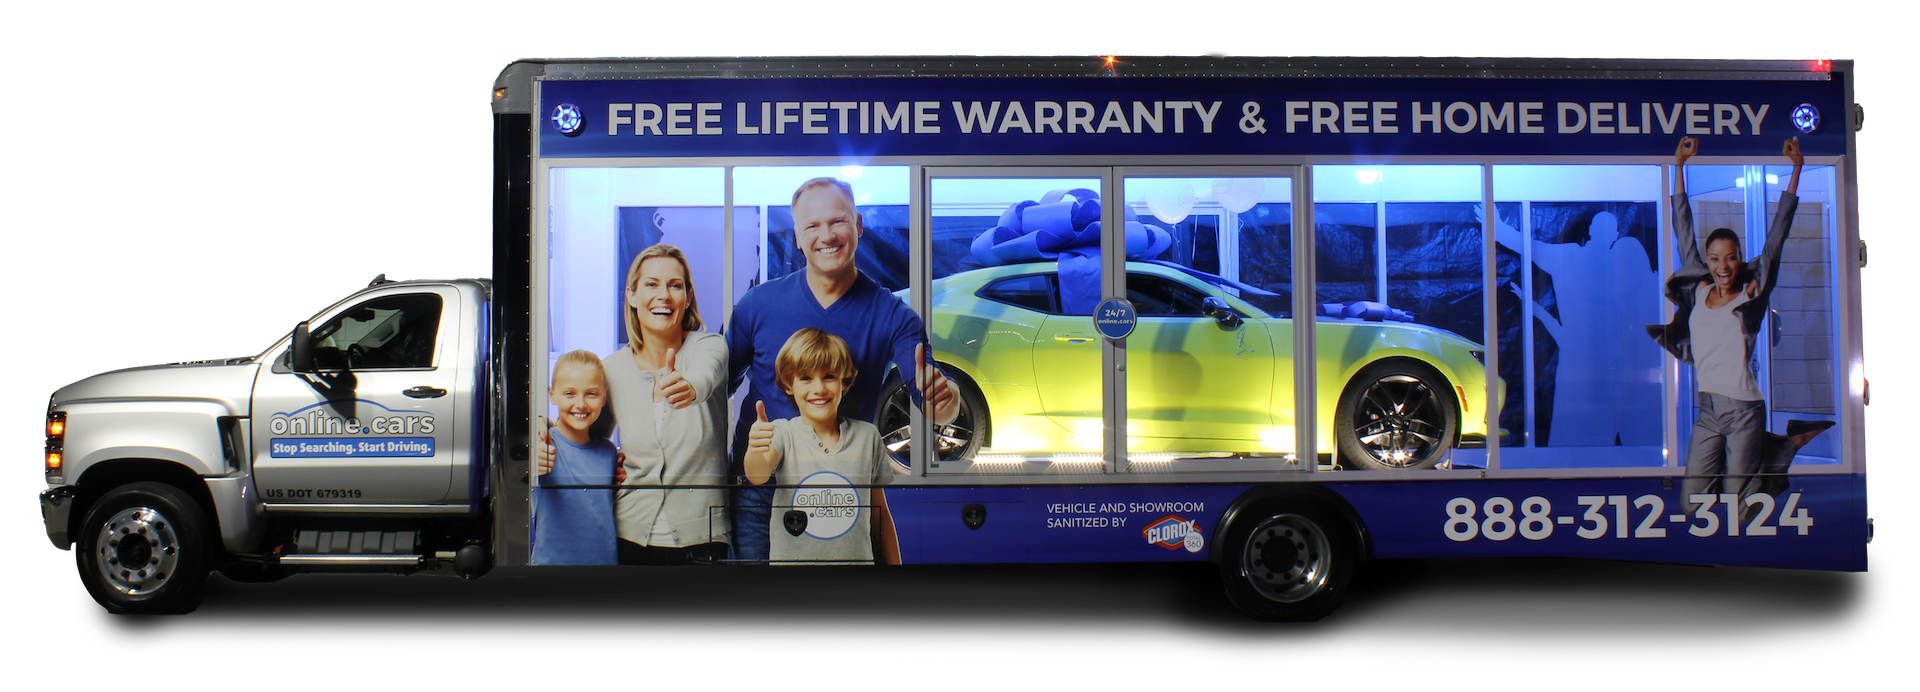 Free Lifetime Warranty Car